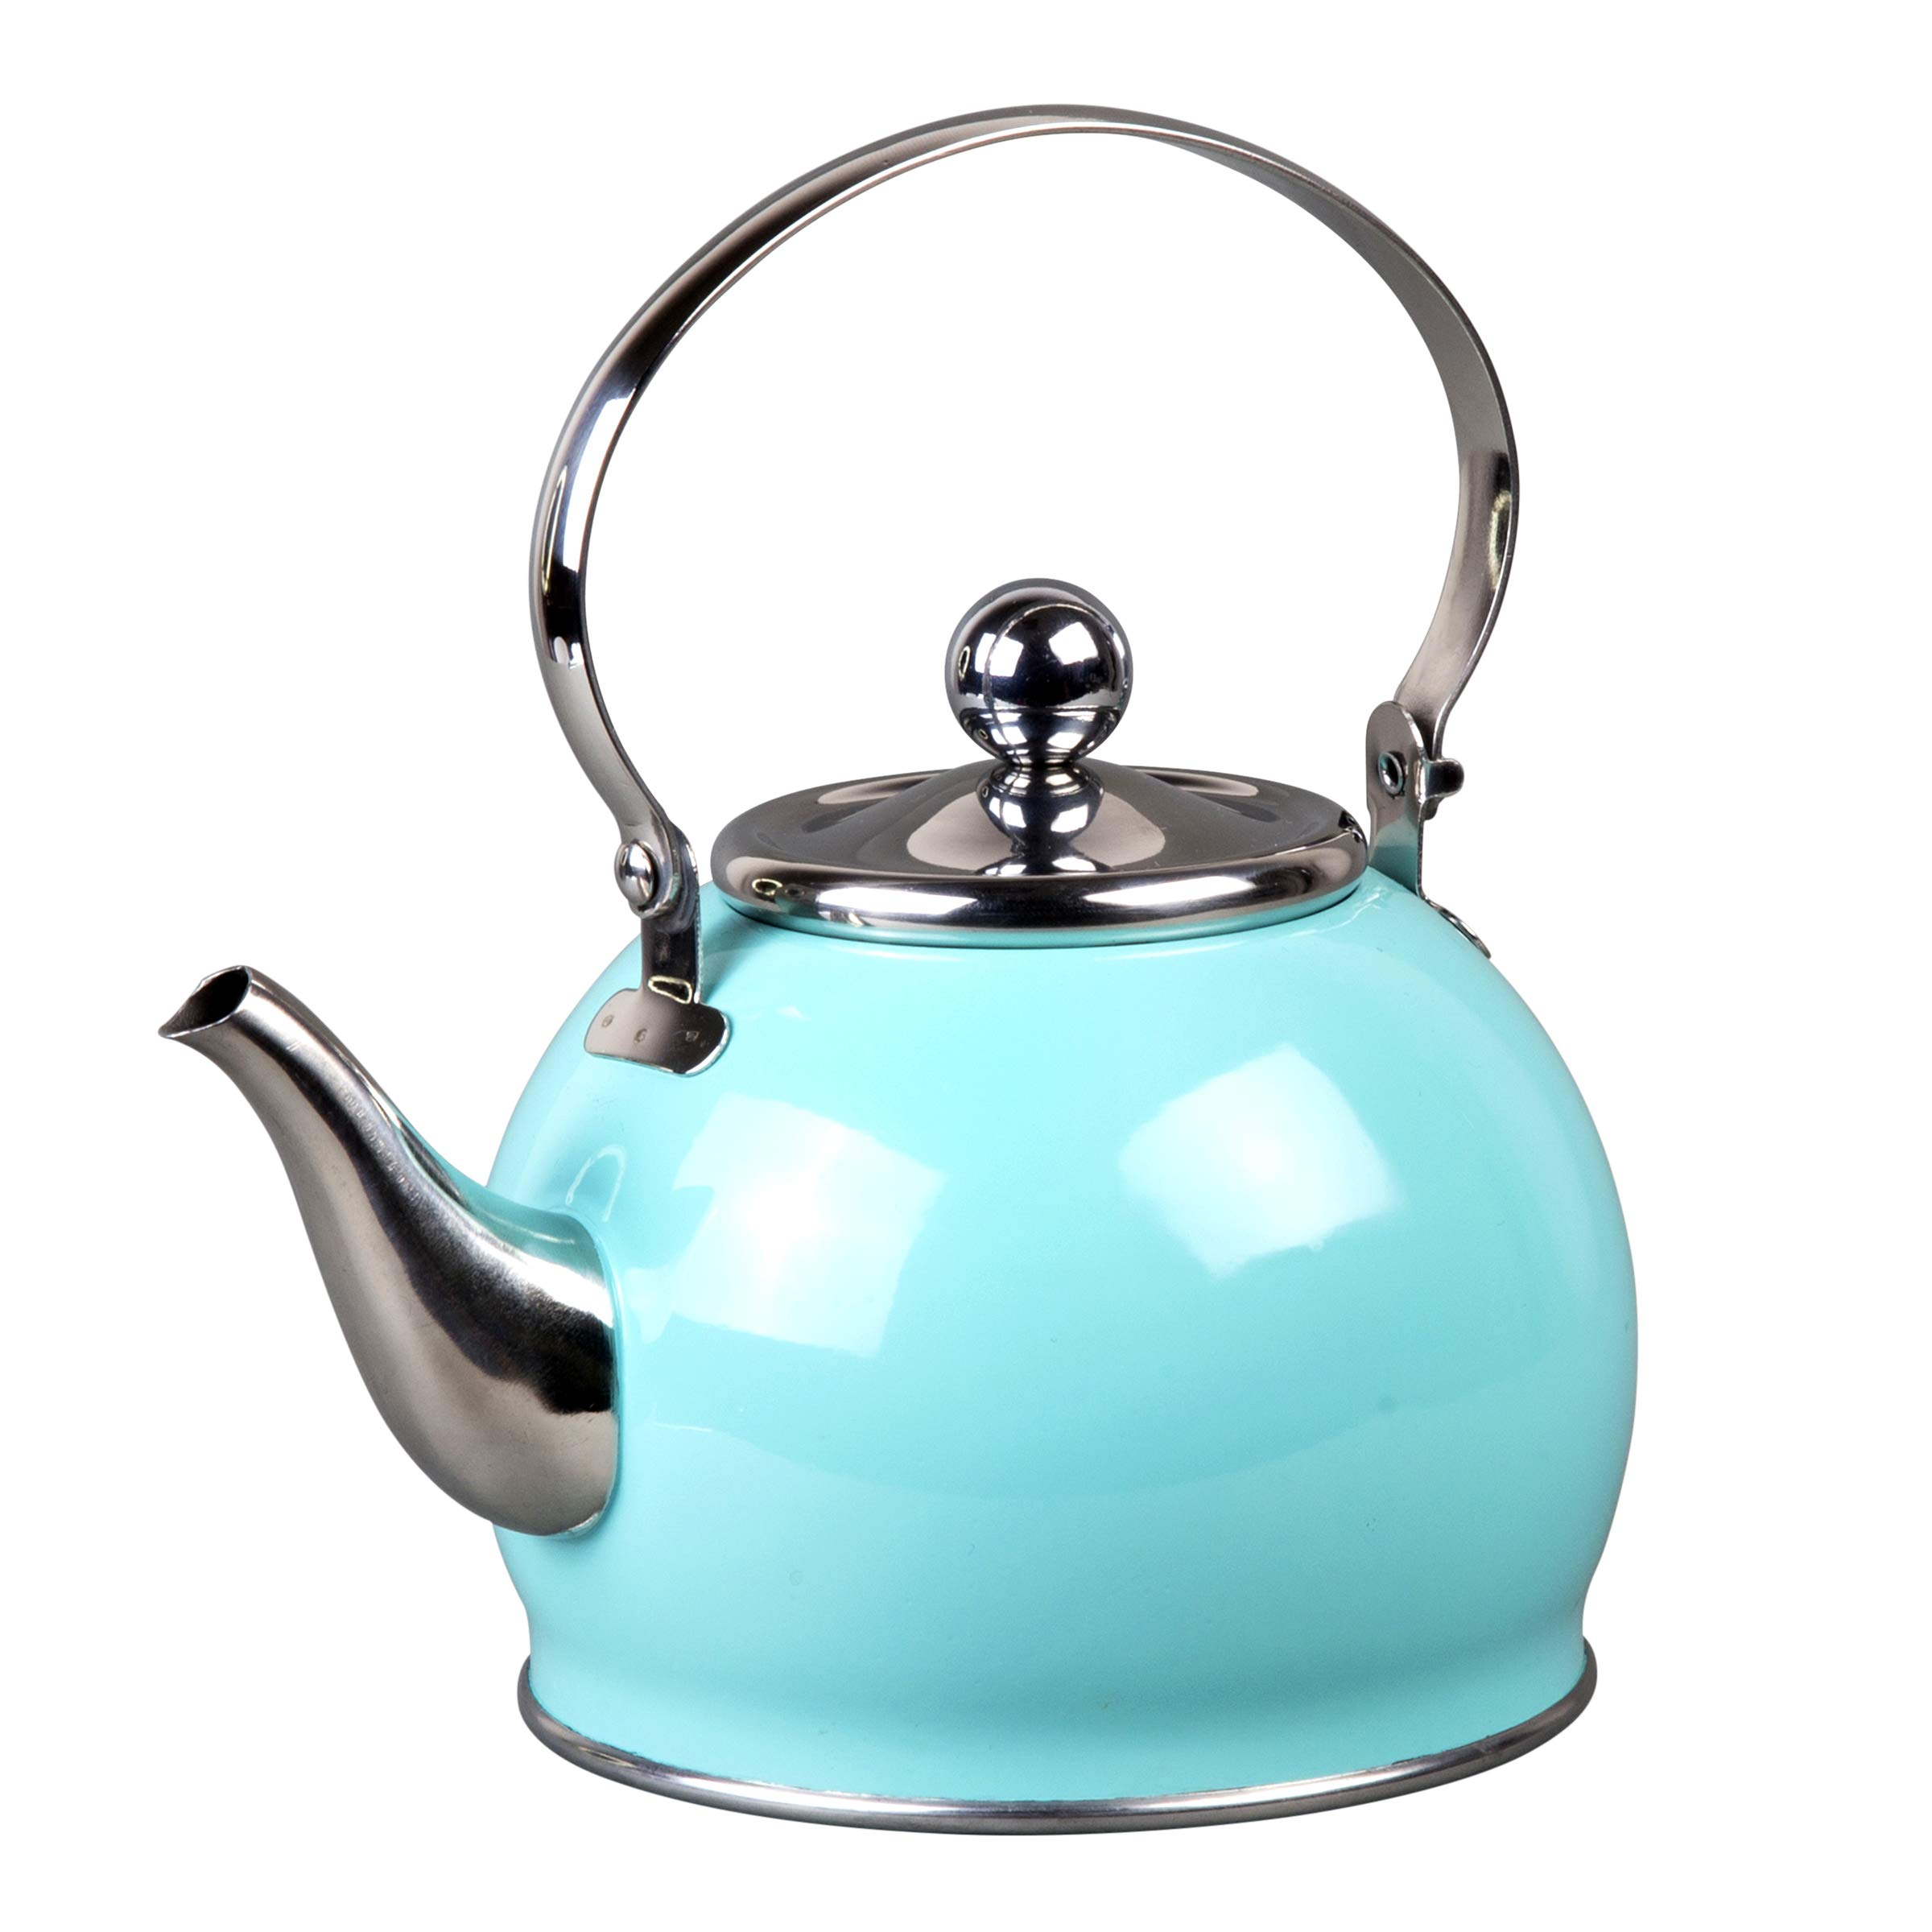 Creative Home 77097 Royal Stainless Steel Tea Kettle with Removable Infuser Basket, Folding Handle, 1.0 Quart, Aqua Sky Finish